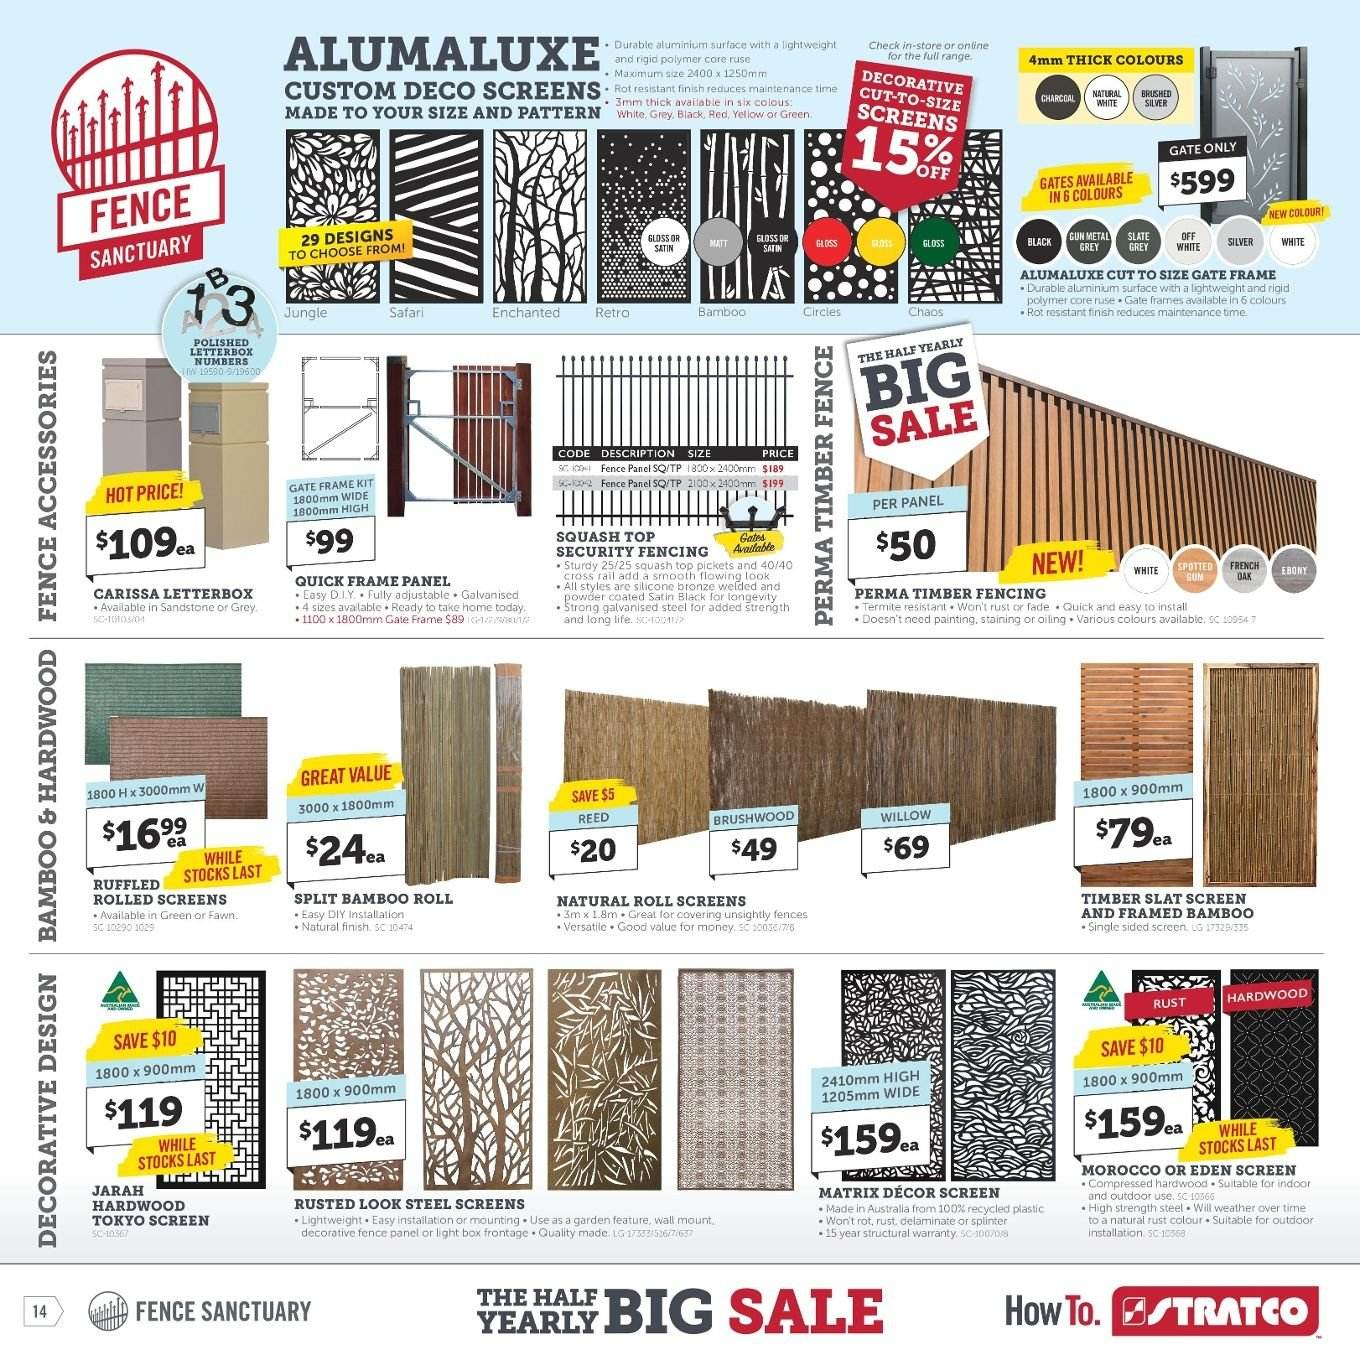 Stratco catalogue and weekly specials 29 3 2019 - 14 4 2019 | Au